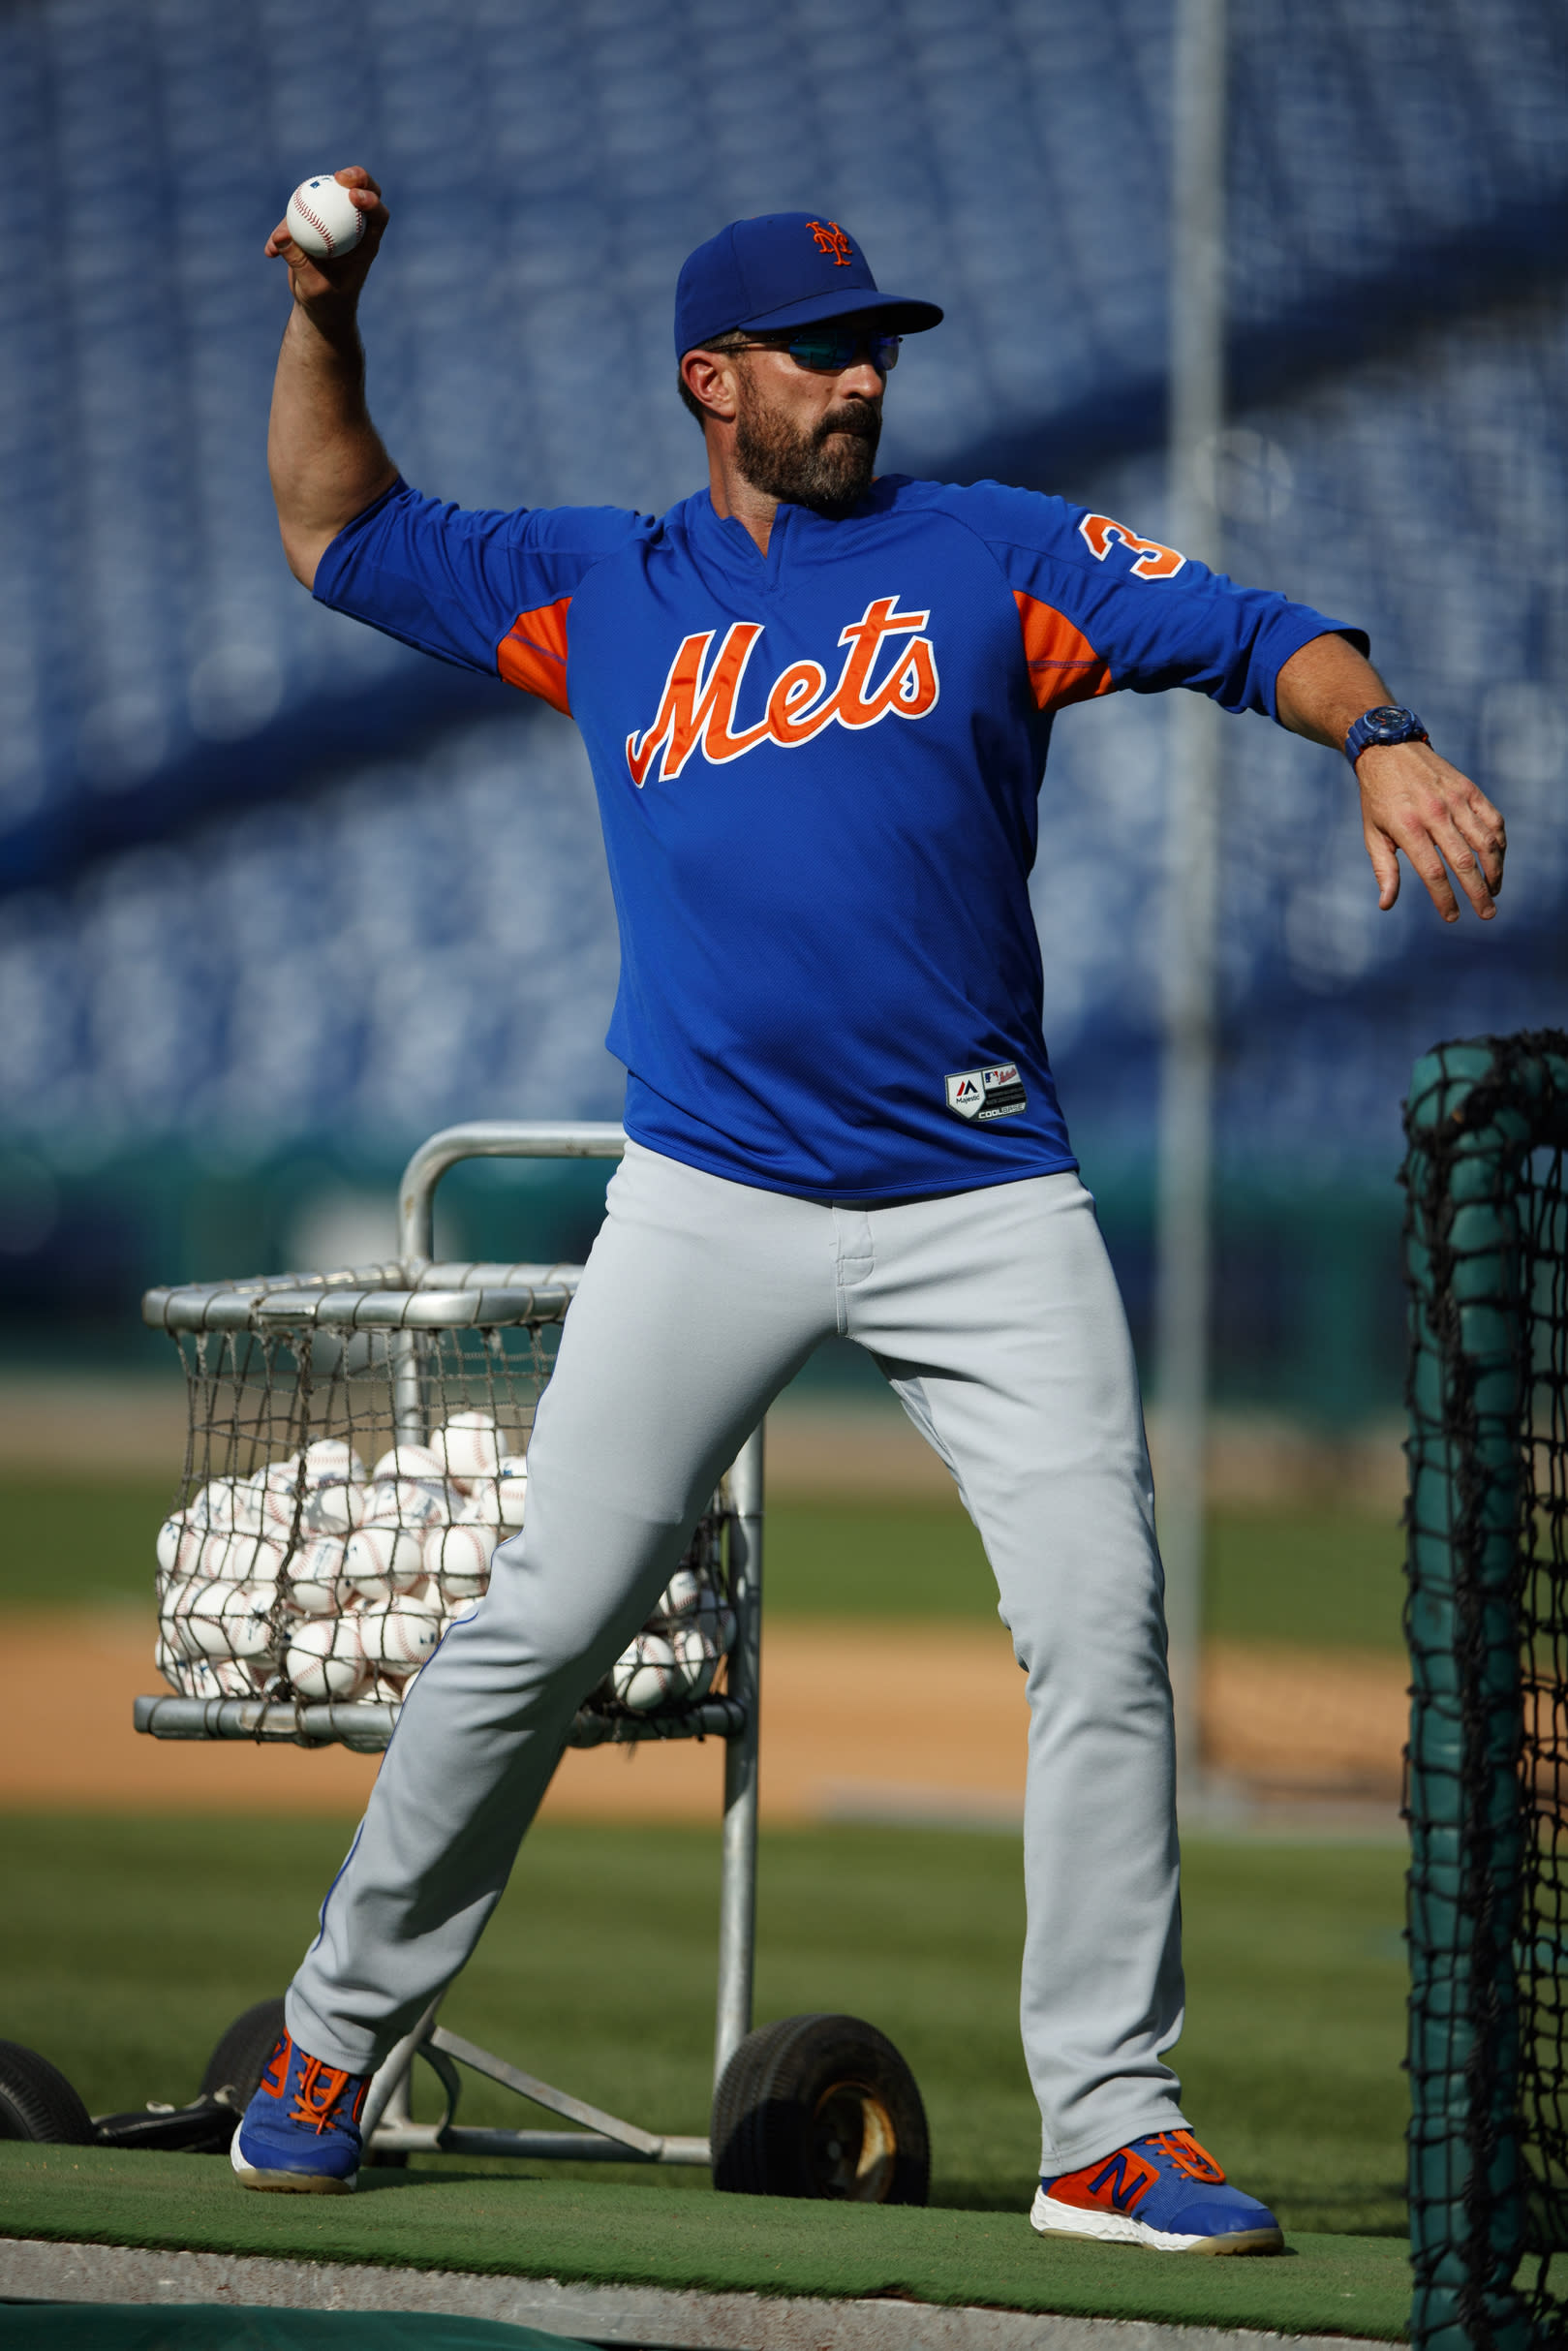 New York Mets manager Mickey Callaway pitcher batting practice before a baseball game against the Philadelphia Phillies, Monday, June 24, 2019, in Philadelphia. (AP Photo/Matt Slocum)